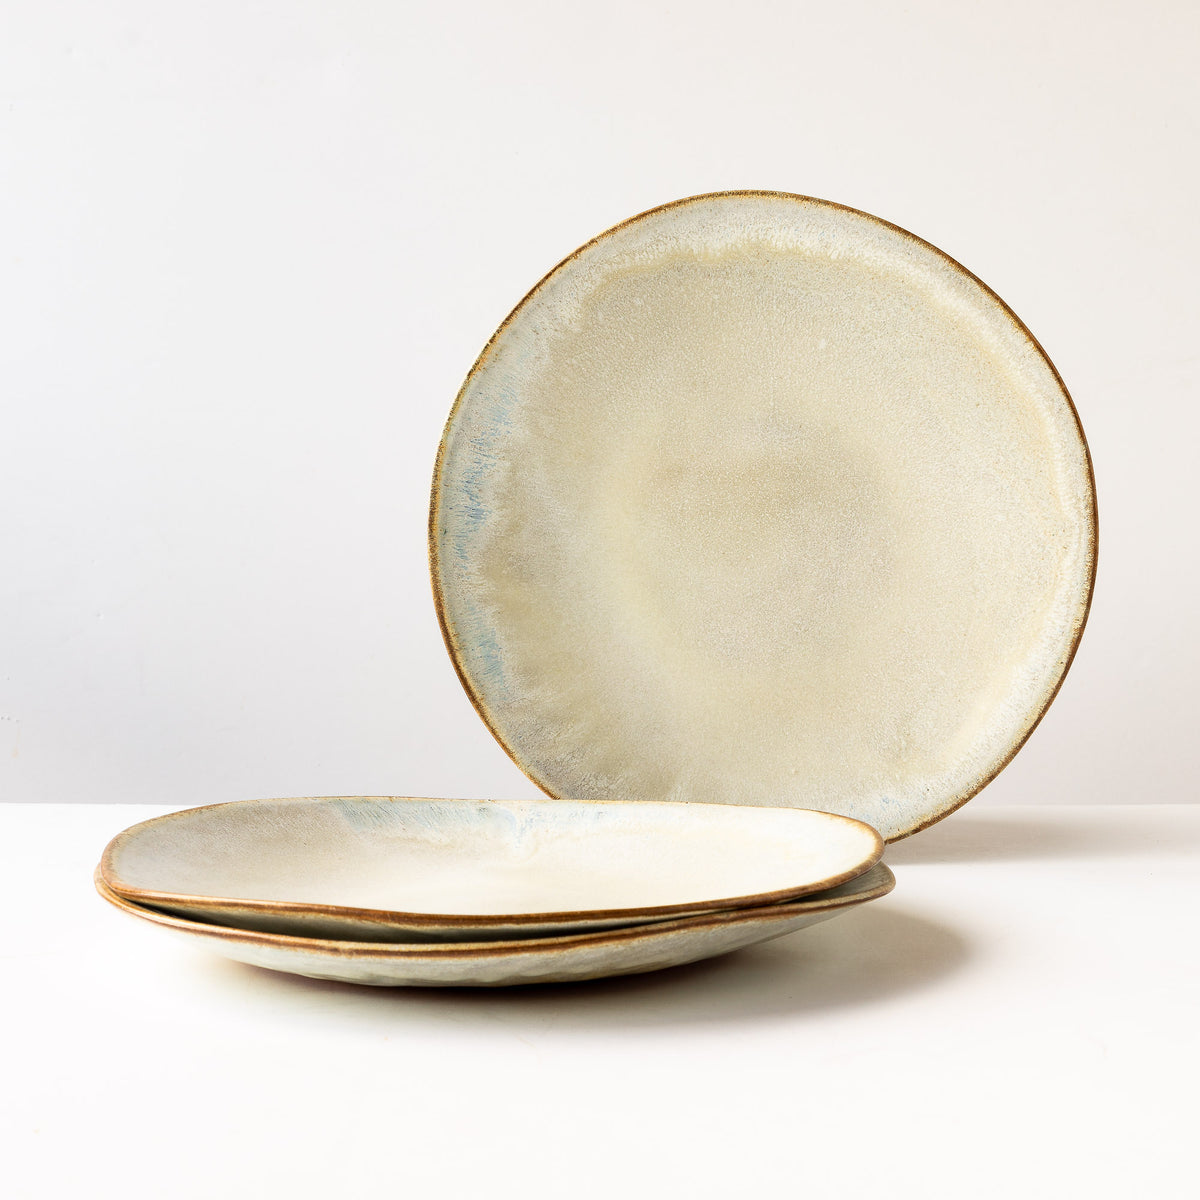 Three Large Handbuilt Plate in Red Stoneware & Cream Glaze - Sold by Chic & Basta